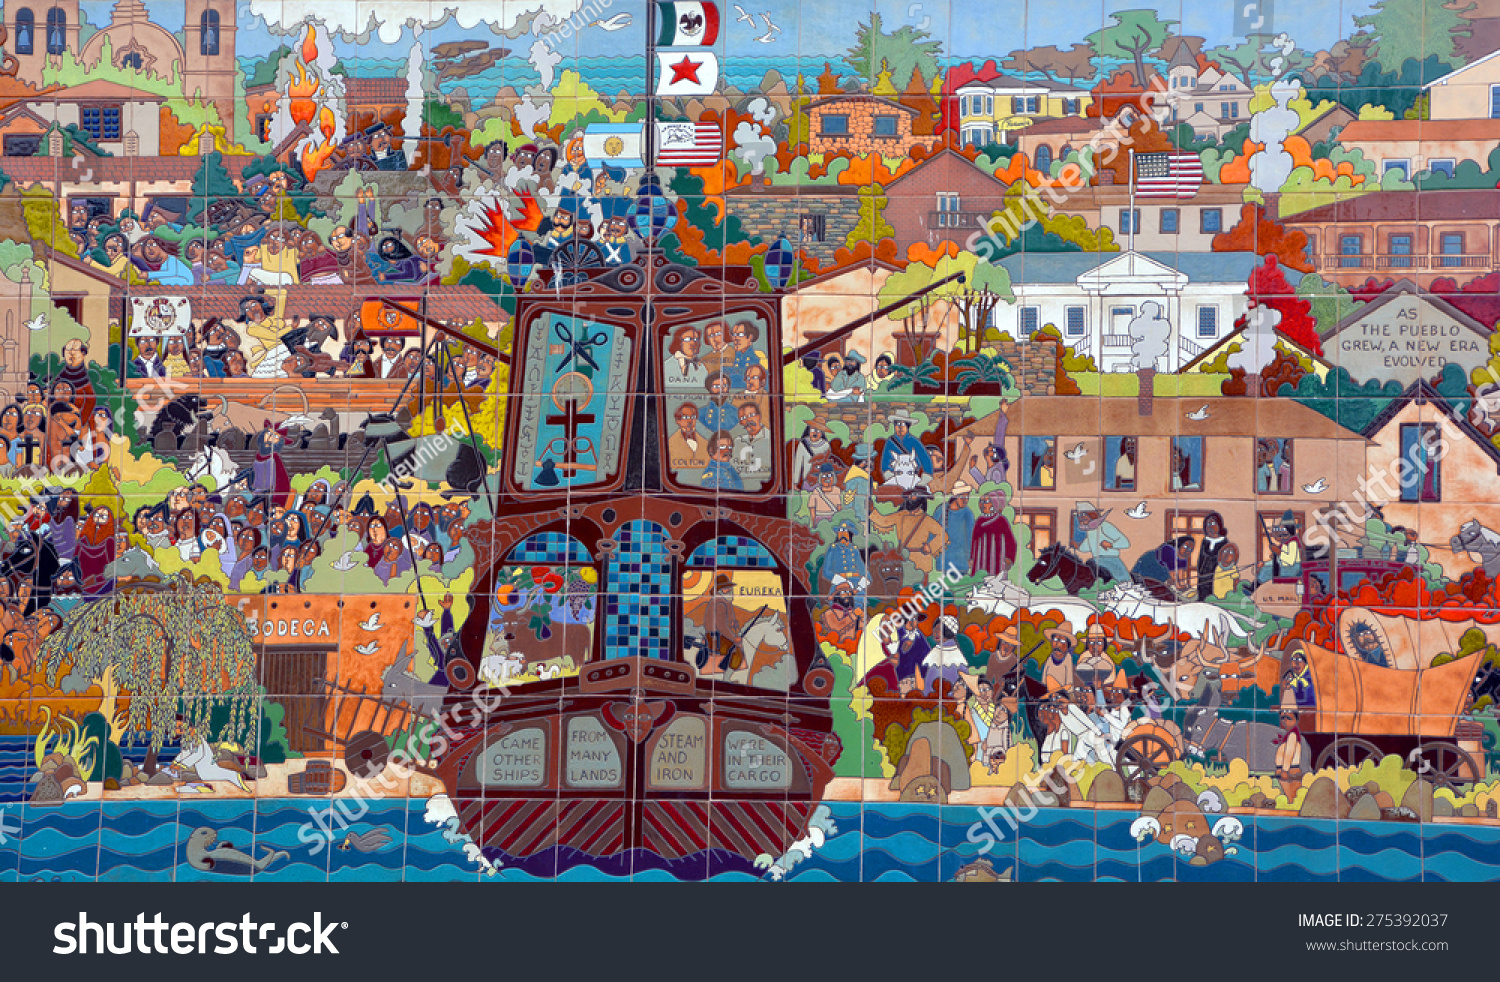 Monterey ca usa 04 12 2015 stock photo 275392037 shutterstock monterey ca usa 04 12 2015 mural is a festive 36 foot ceramic tile doublecrazyfo Images